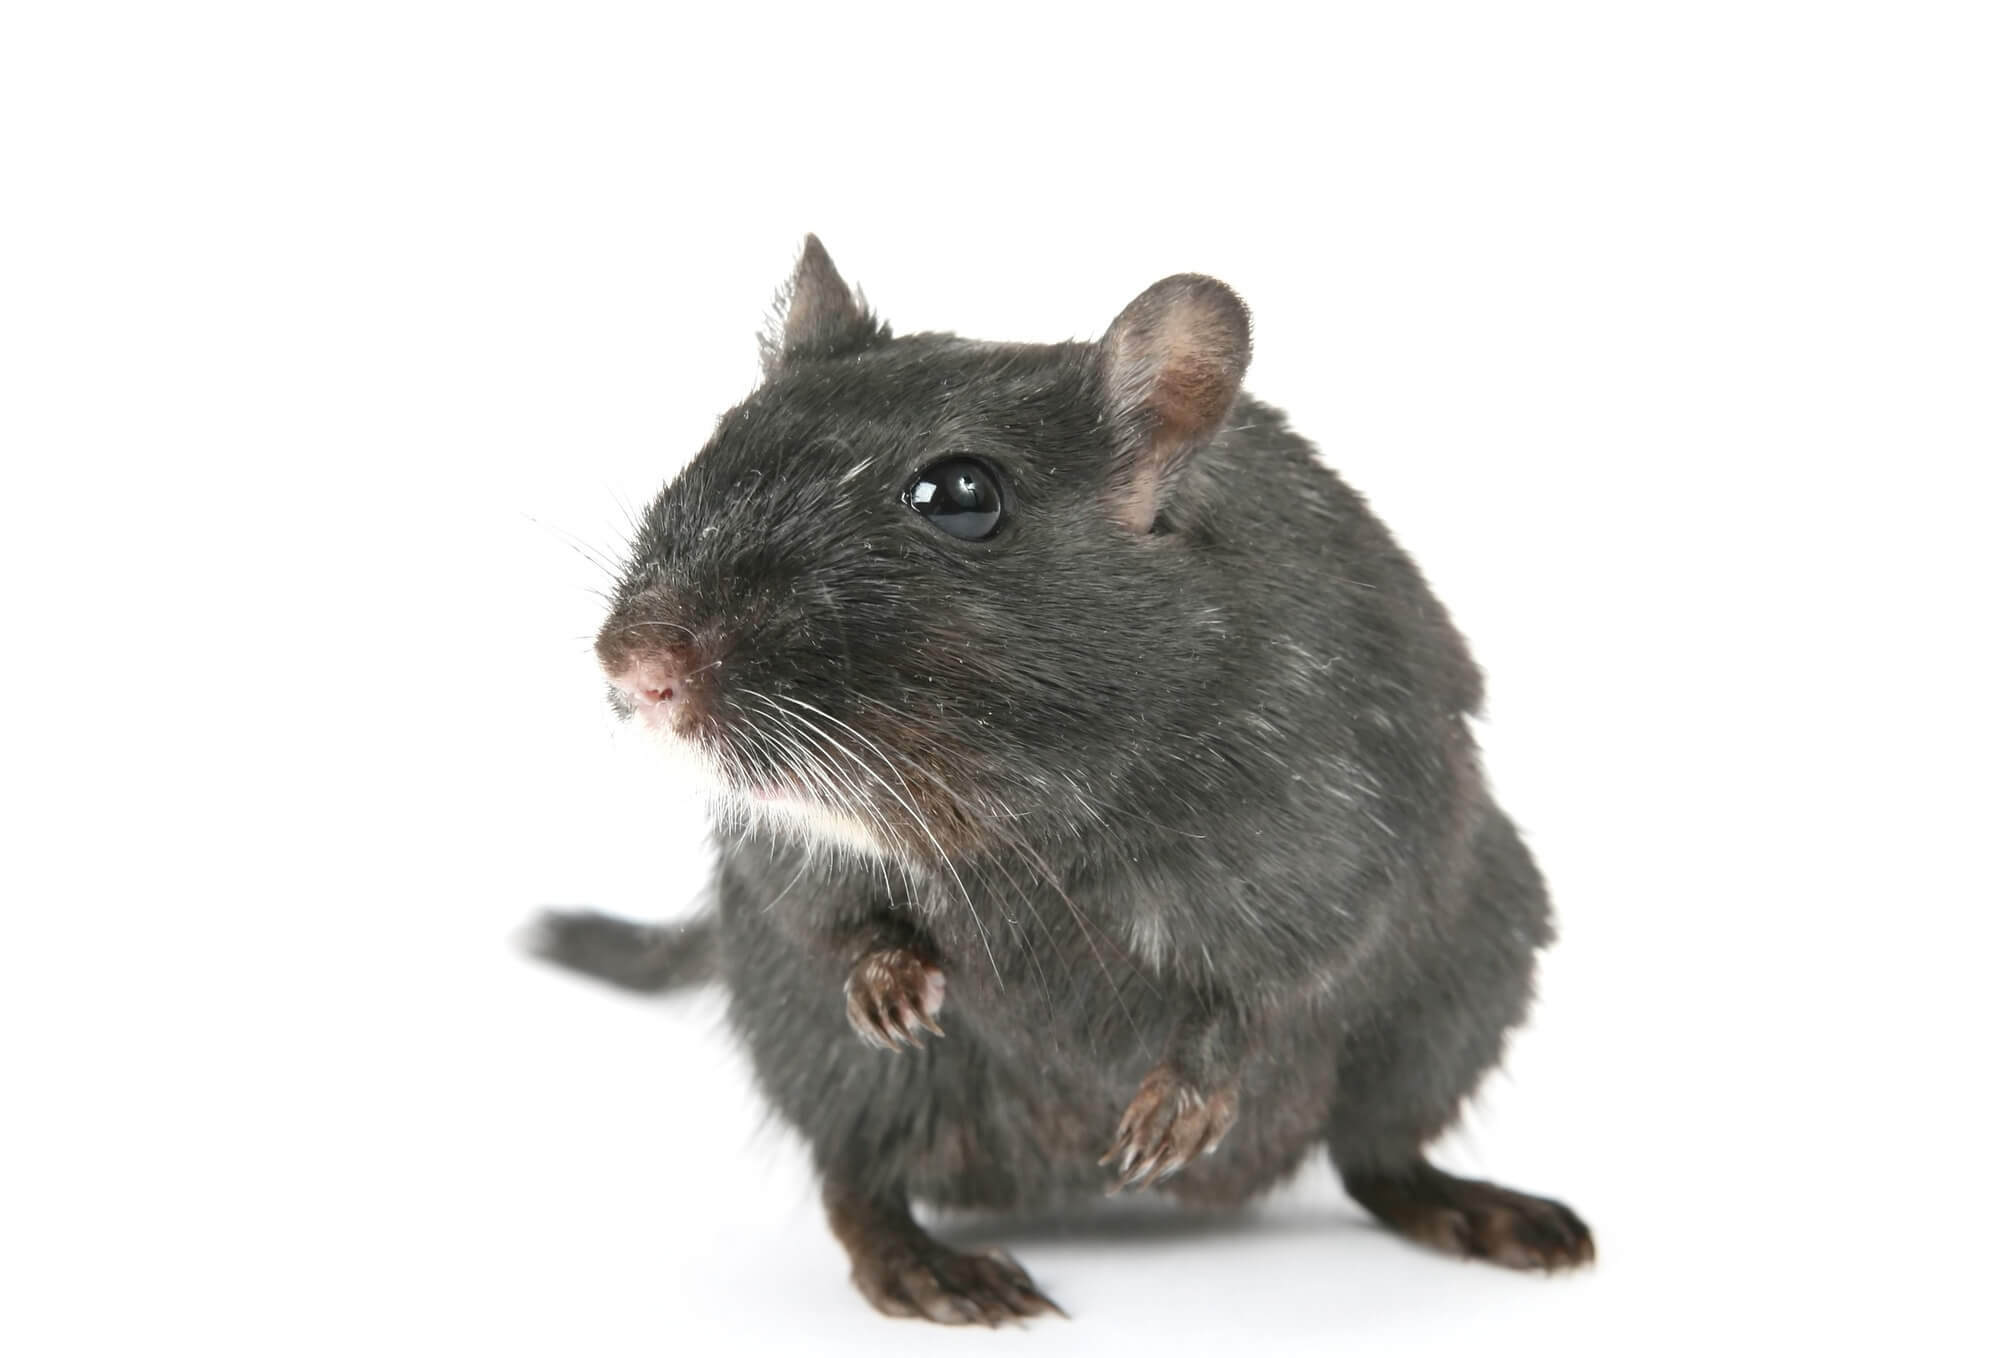 Florida Rodents to Look Out For | Pest Control in South Florida